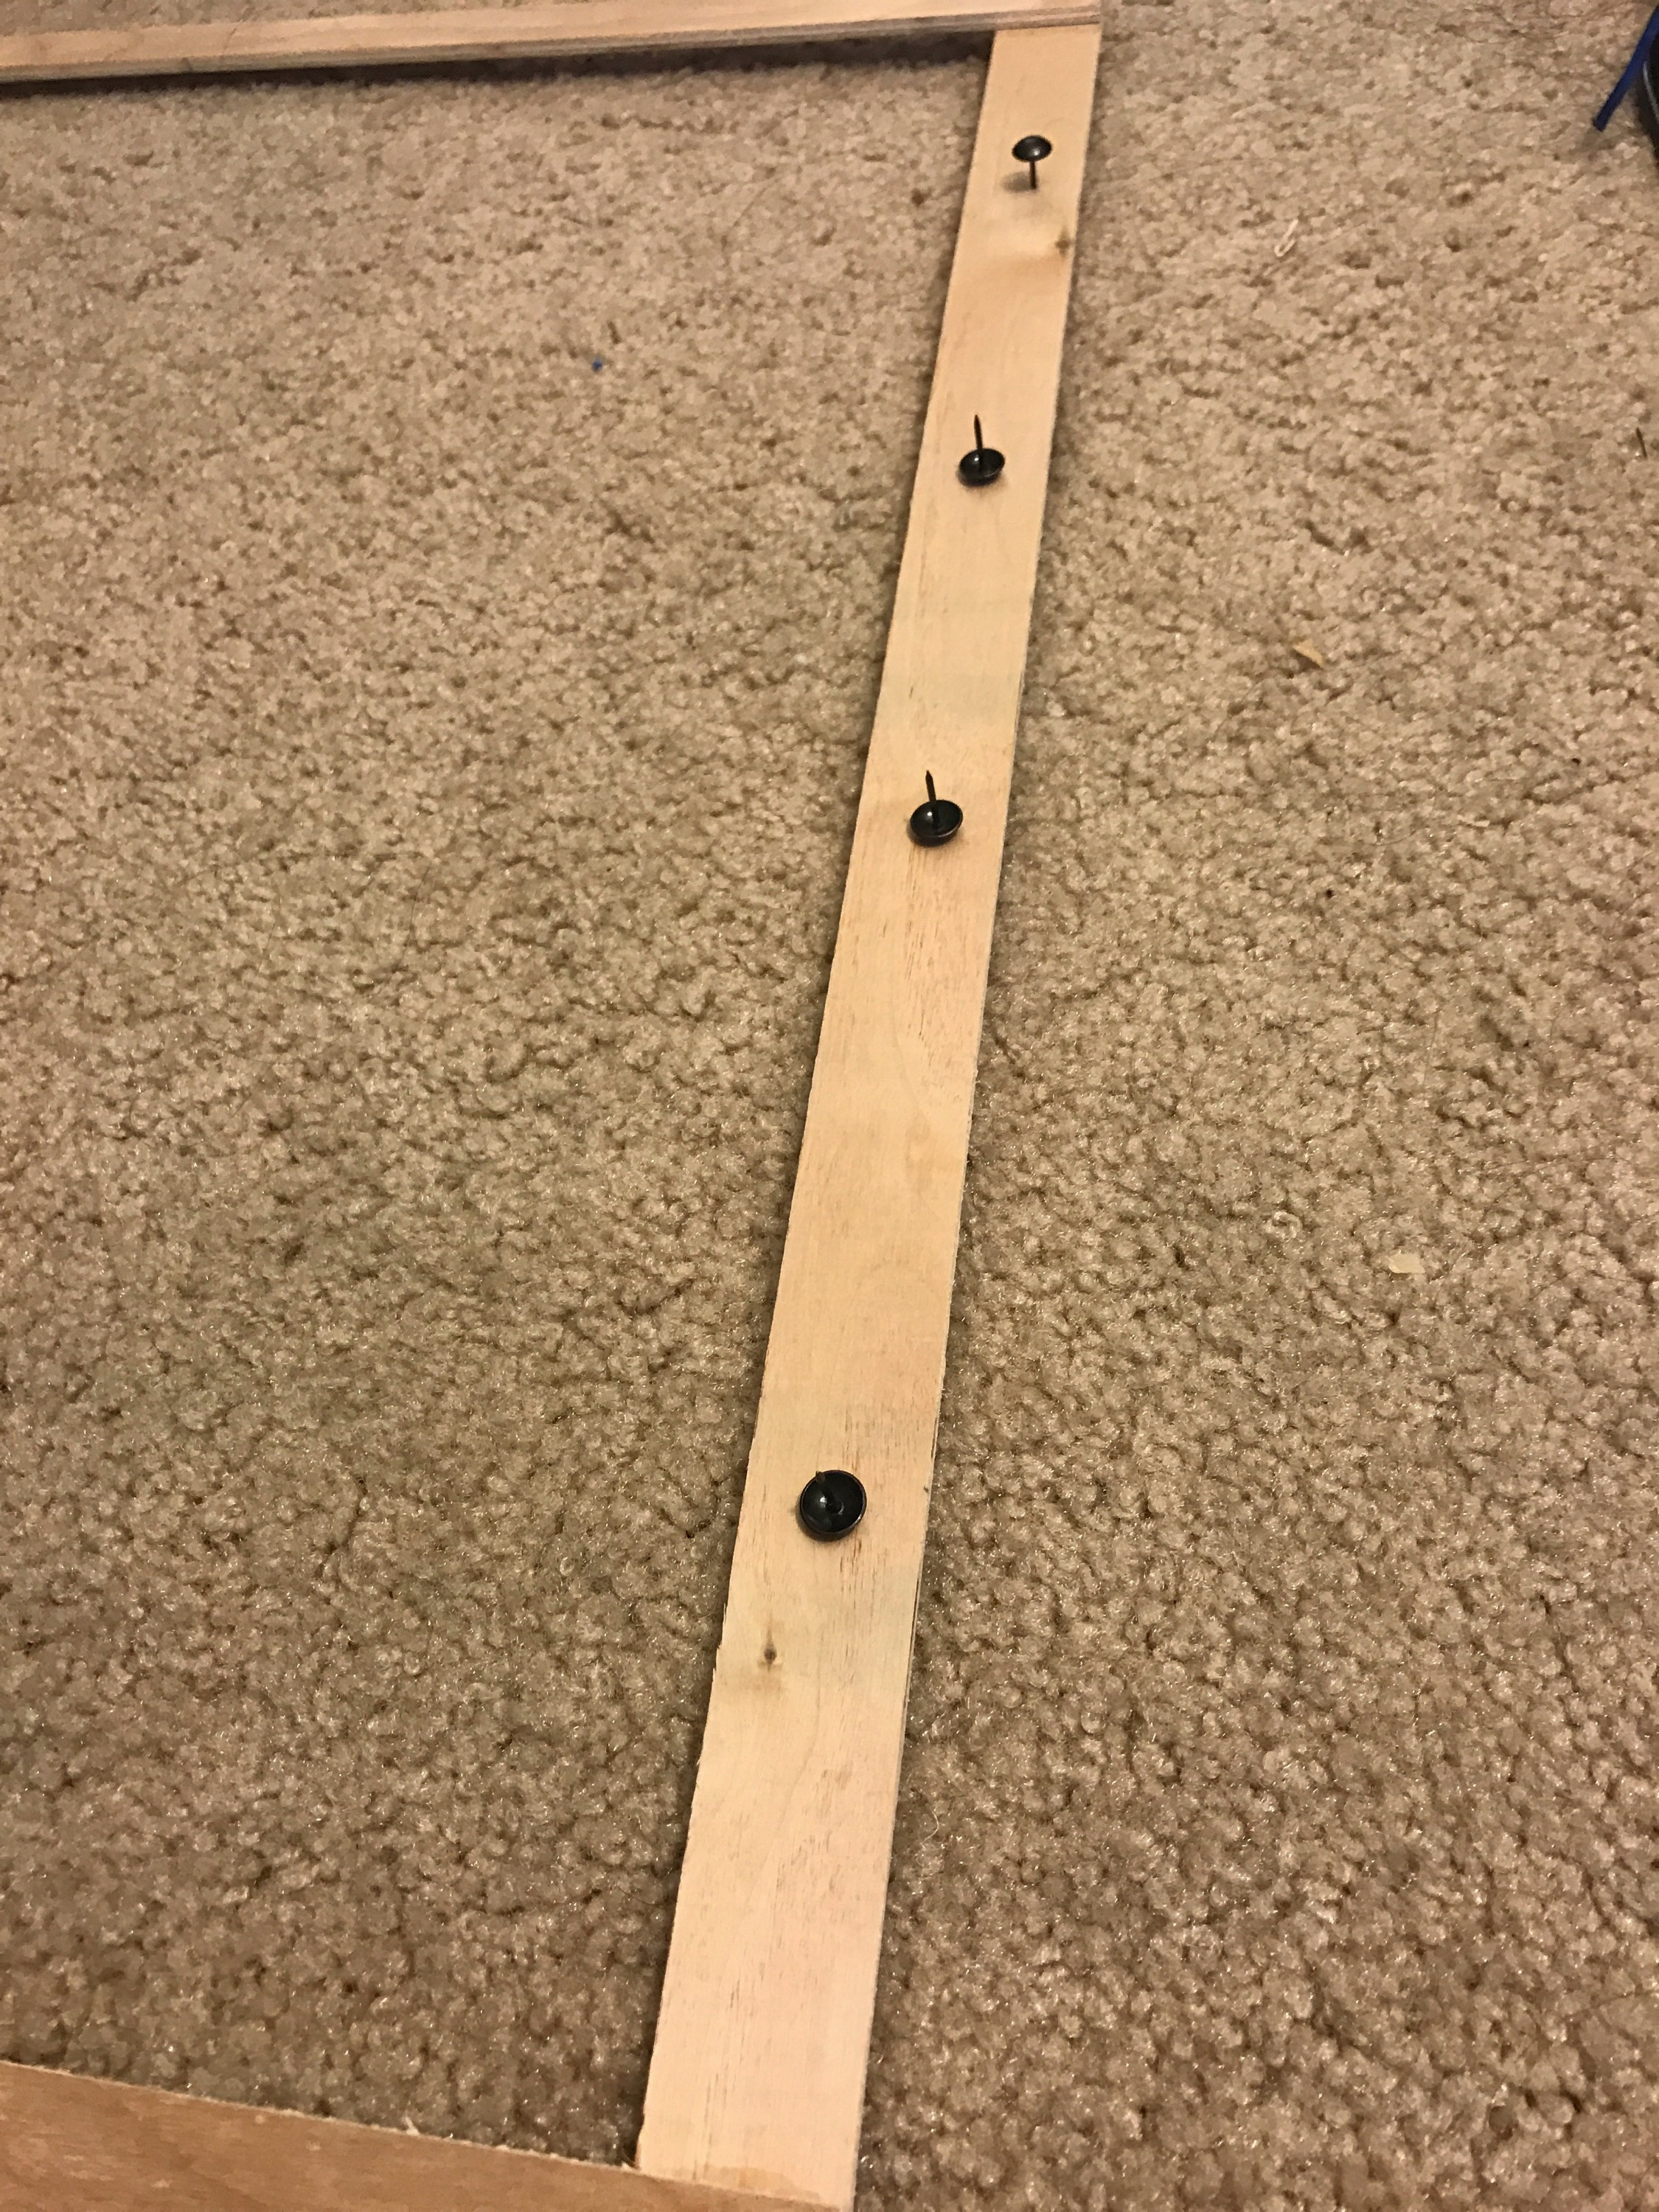 Picture of Put Pins on Frame